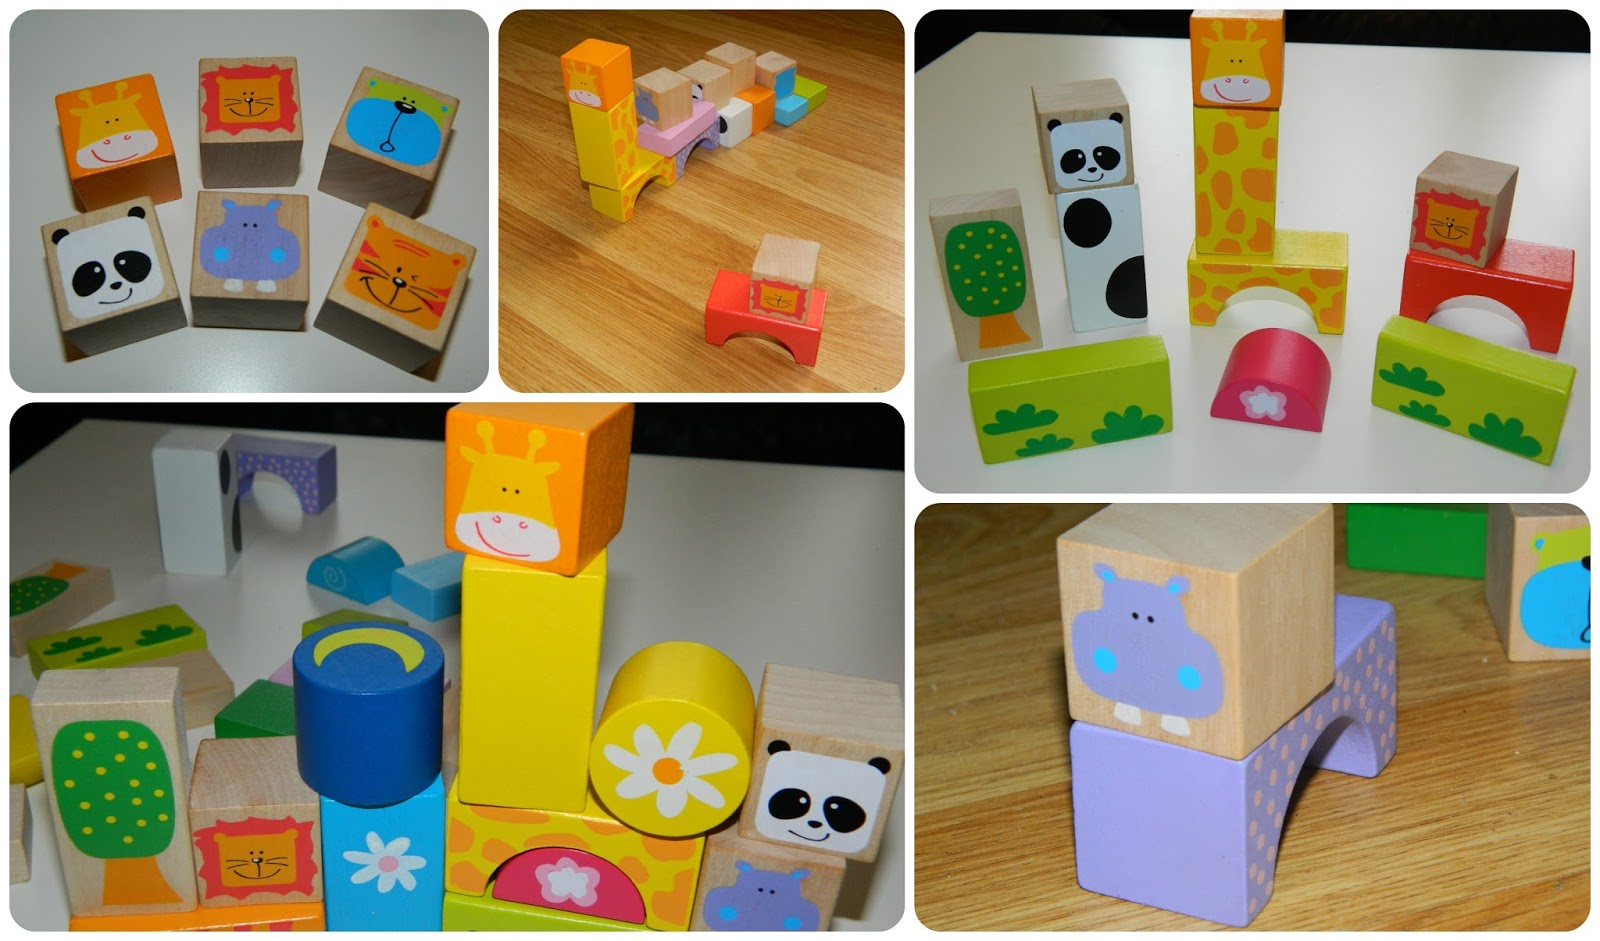 Learning Through Play With Bigjigs Wooden Safari Animal Building Blocks